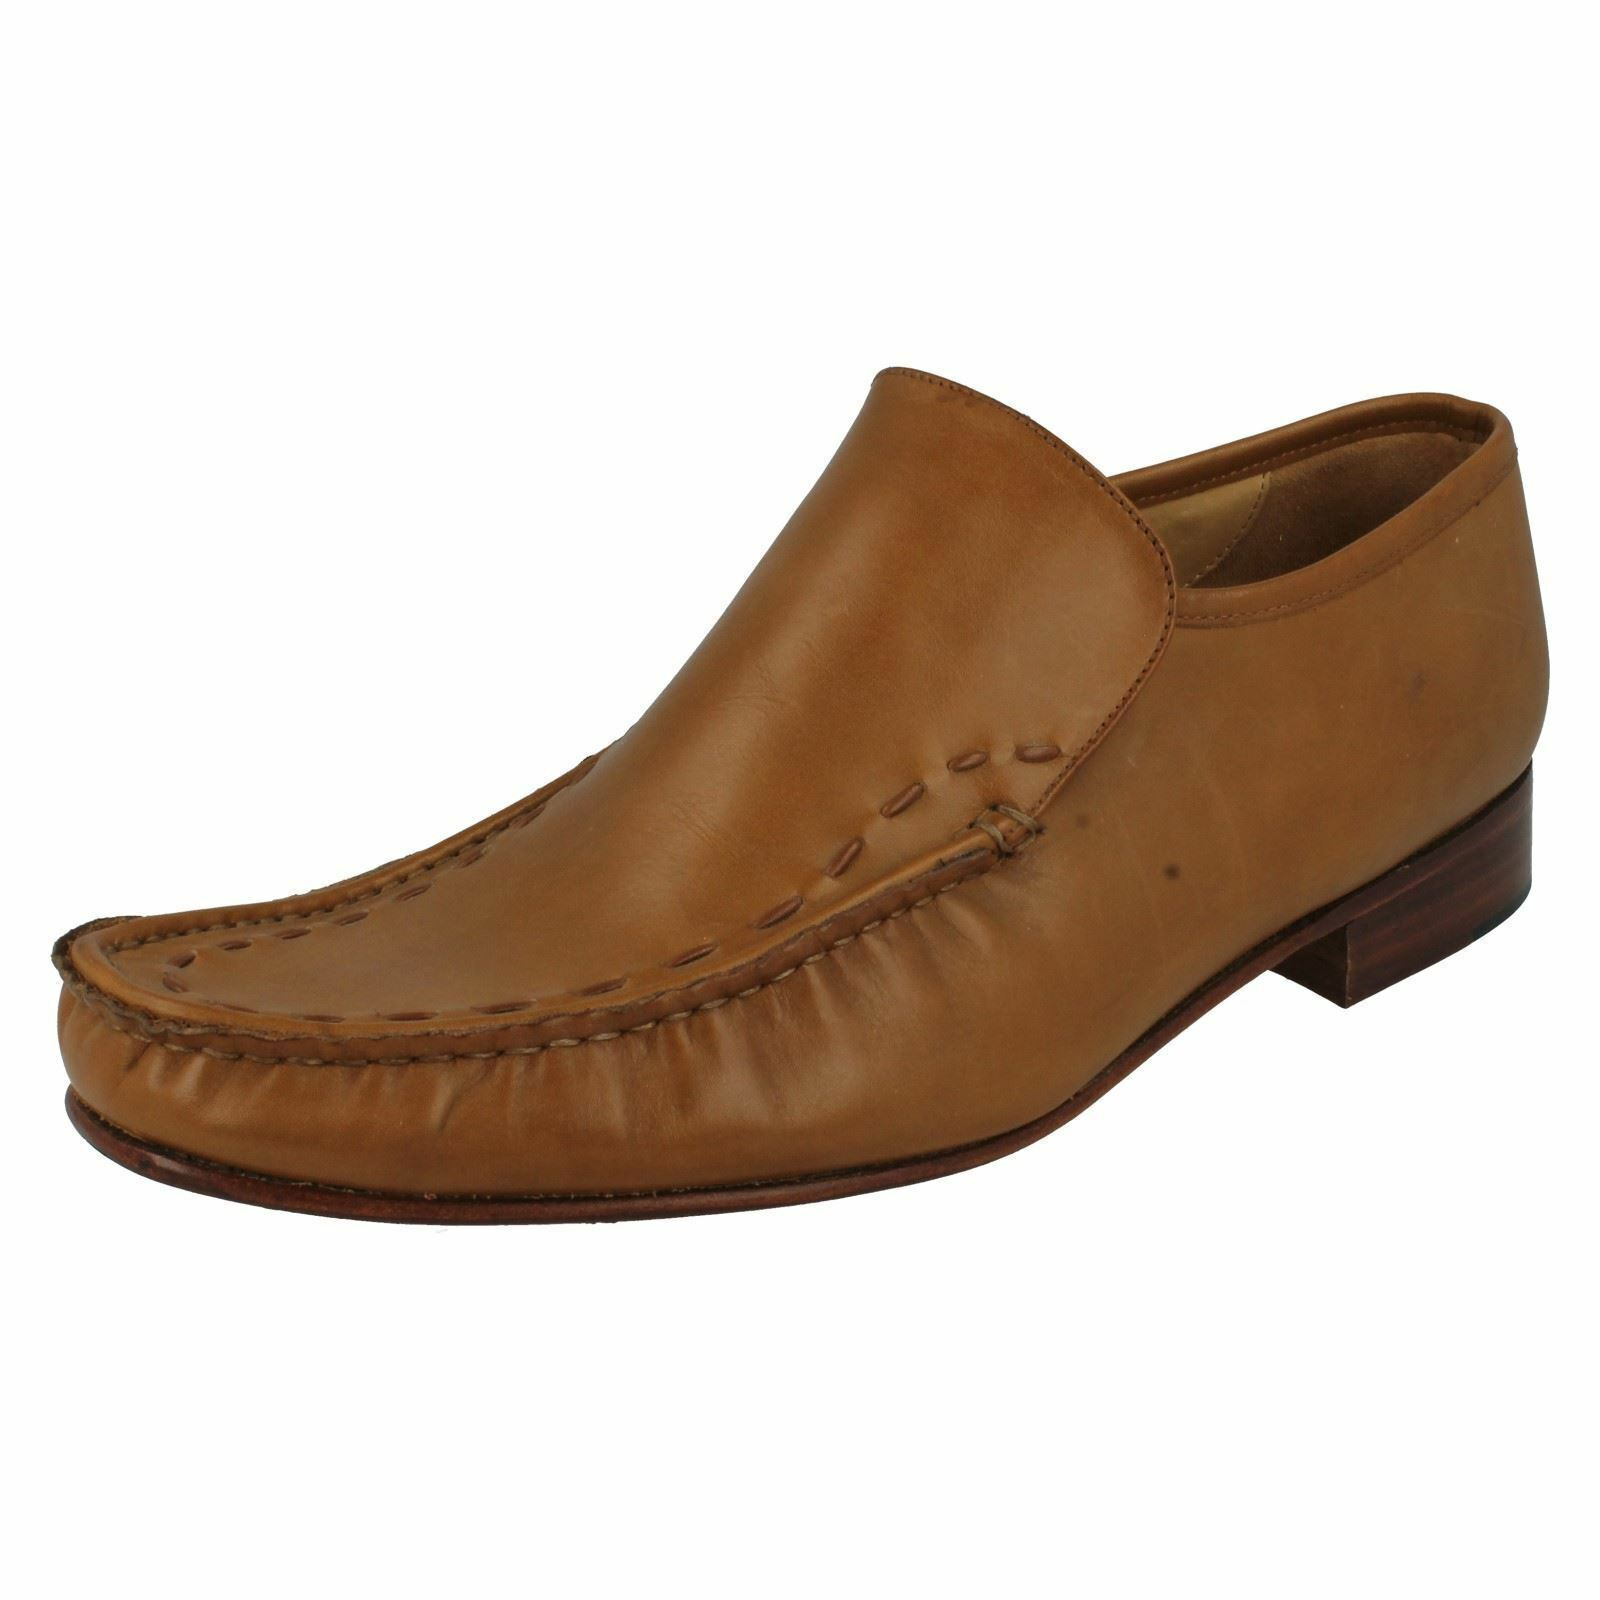 Grenson MAINE  9683-02 Mens Tan Leather Slip-on Moccasin shoes (36B) (Kett)